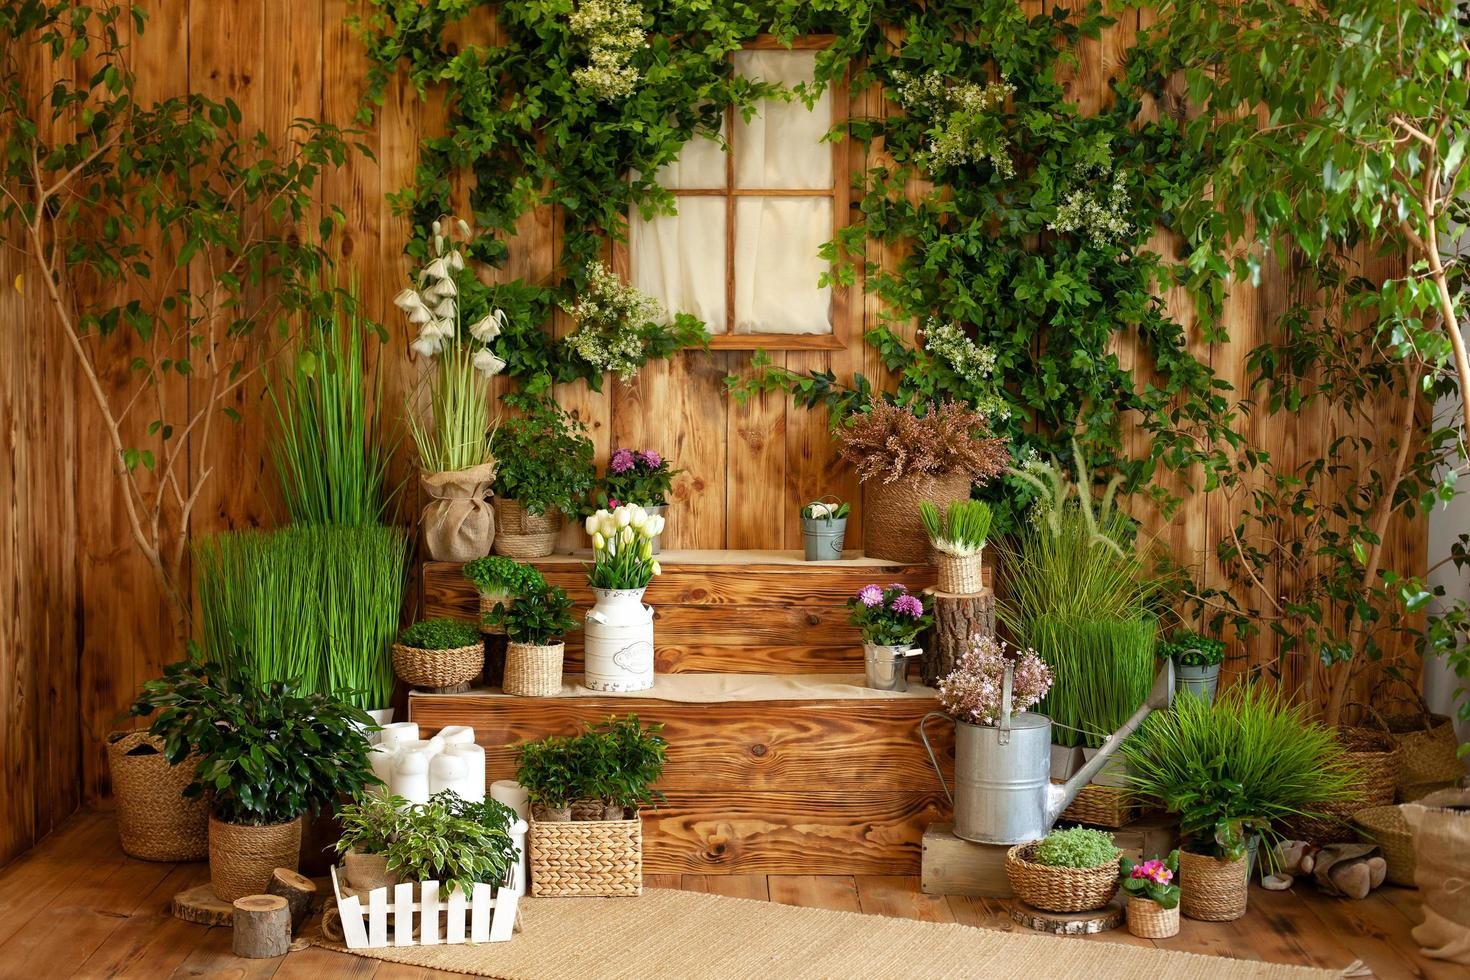 Spring patio of a wooden house with green plants  photo